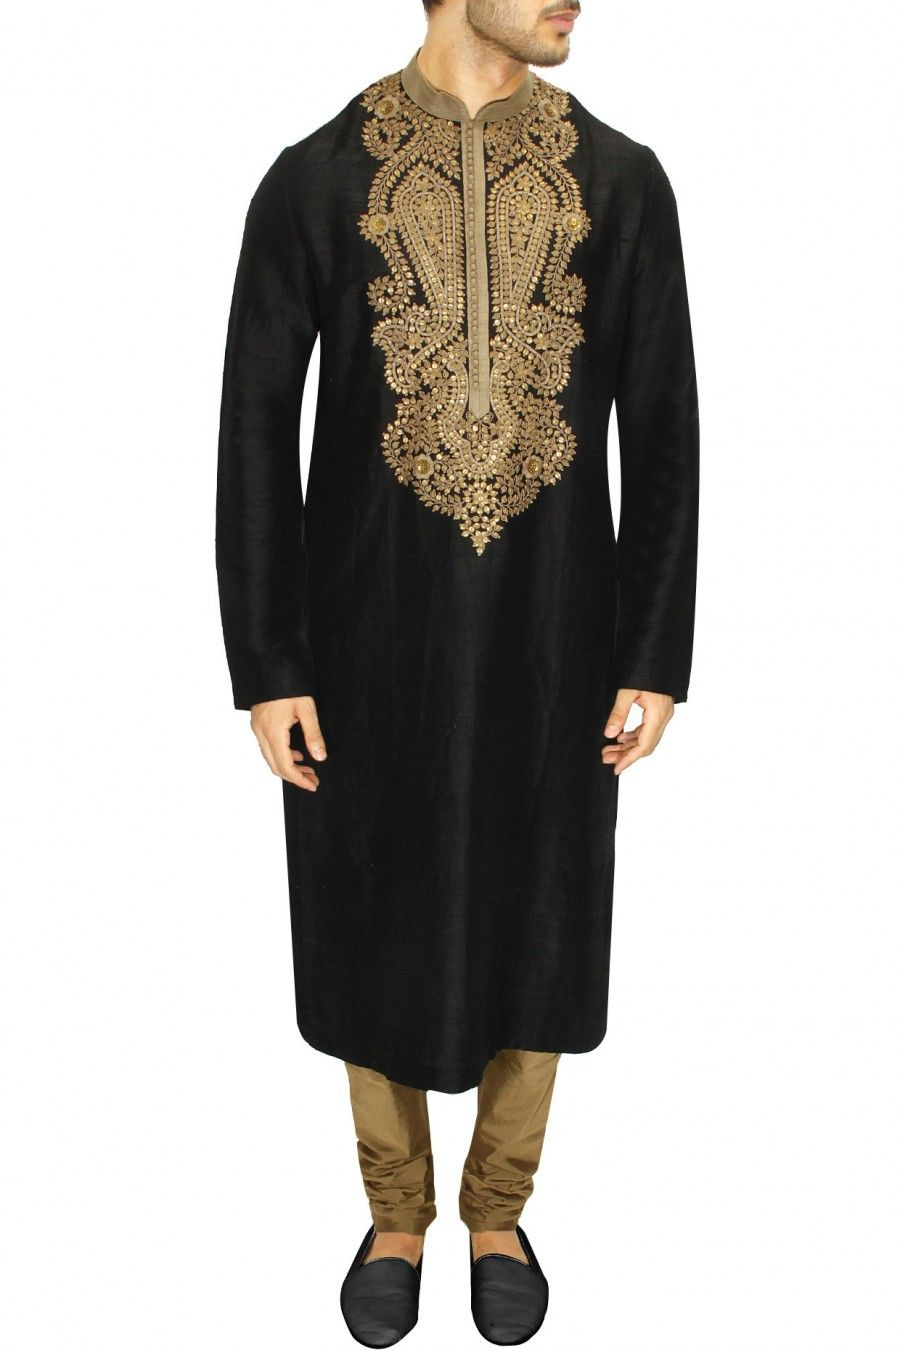 Sabyasachi Men S Kurta Stylish Mens Fashion Mens Kurta Designs